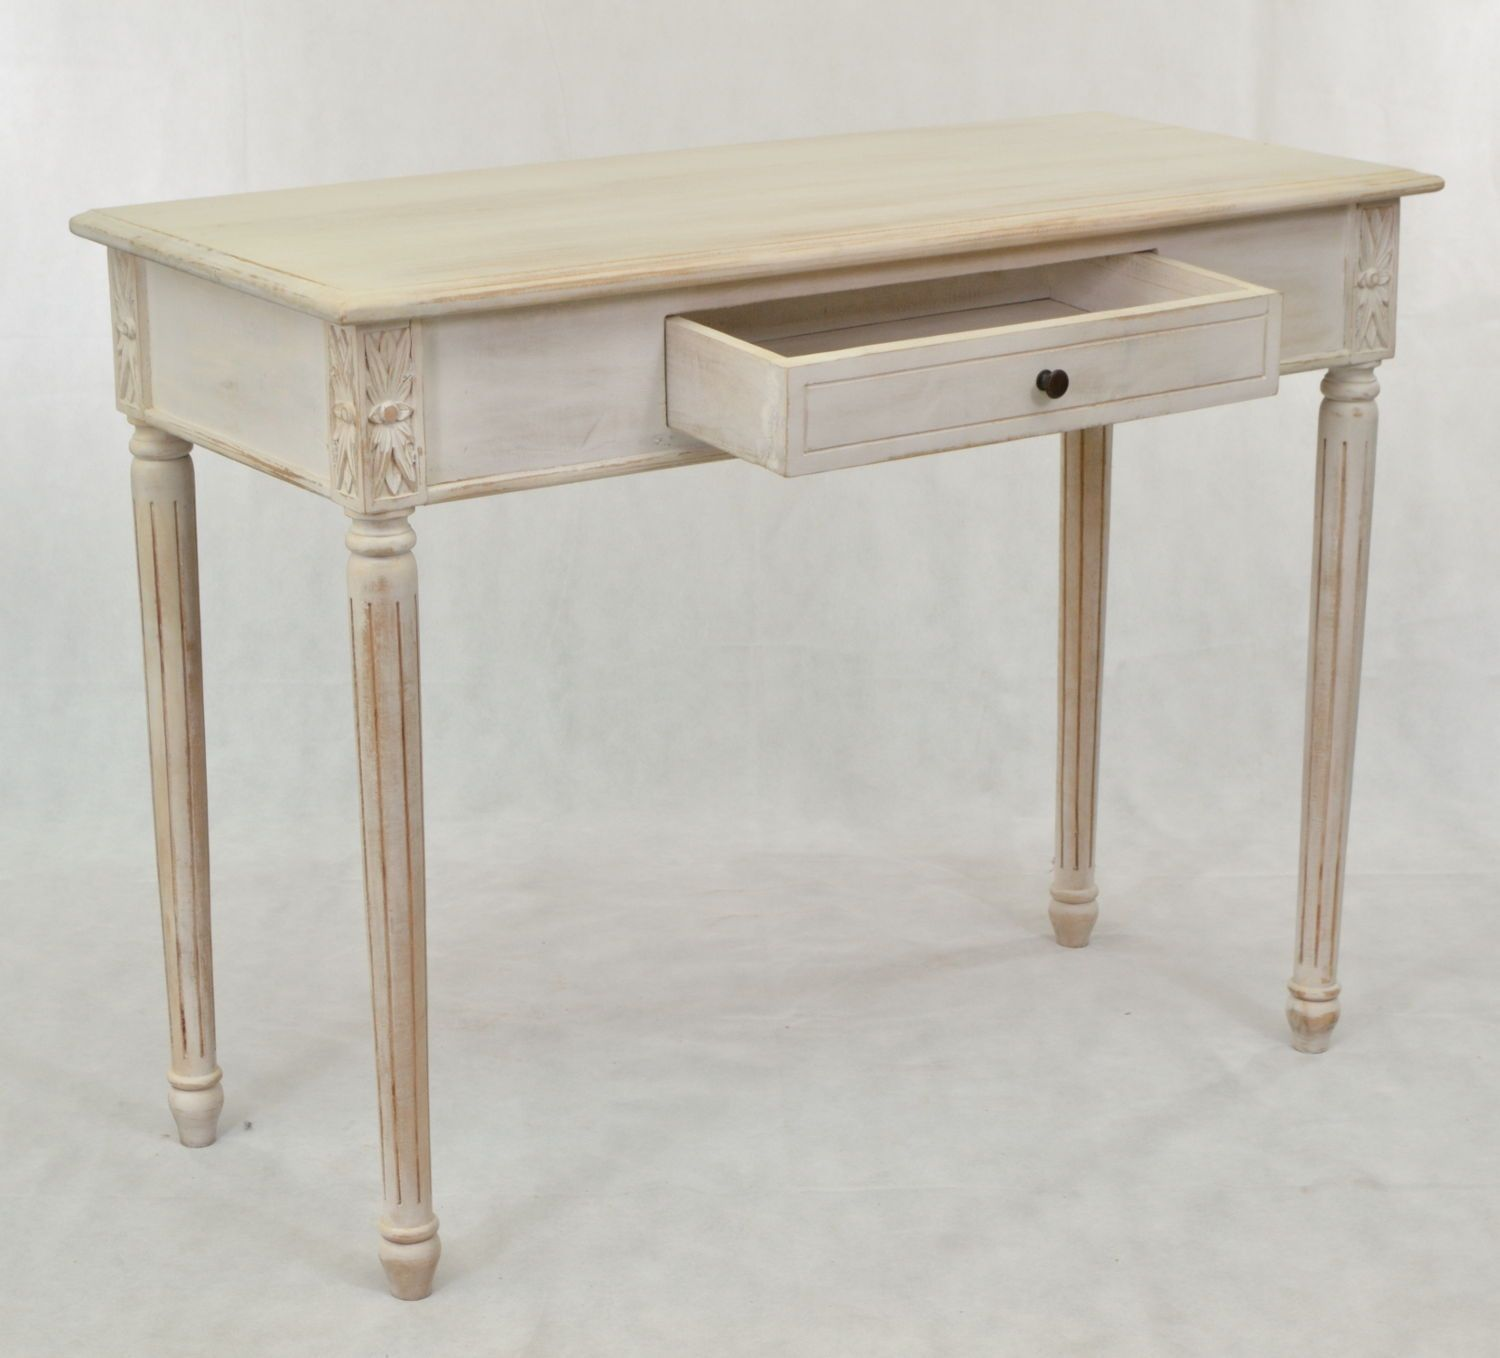 Solid wood console table in the white painted finish